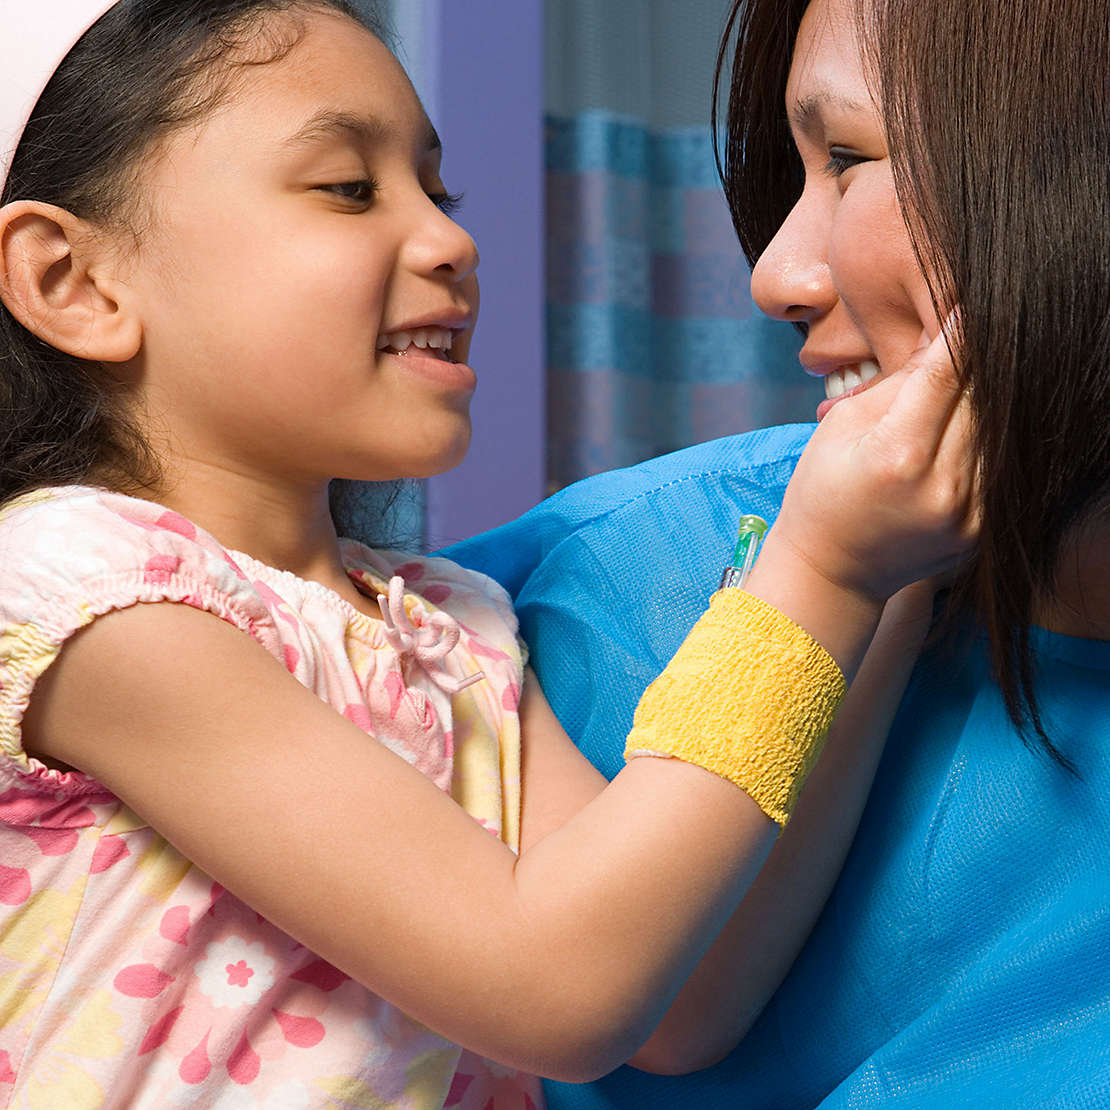 Nurse holding a smiling child